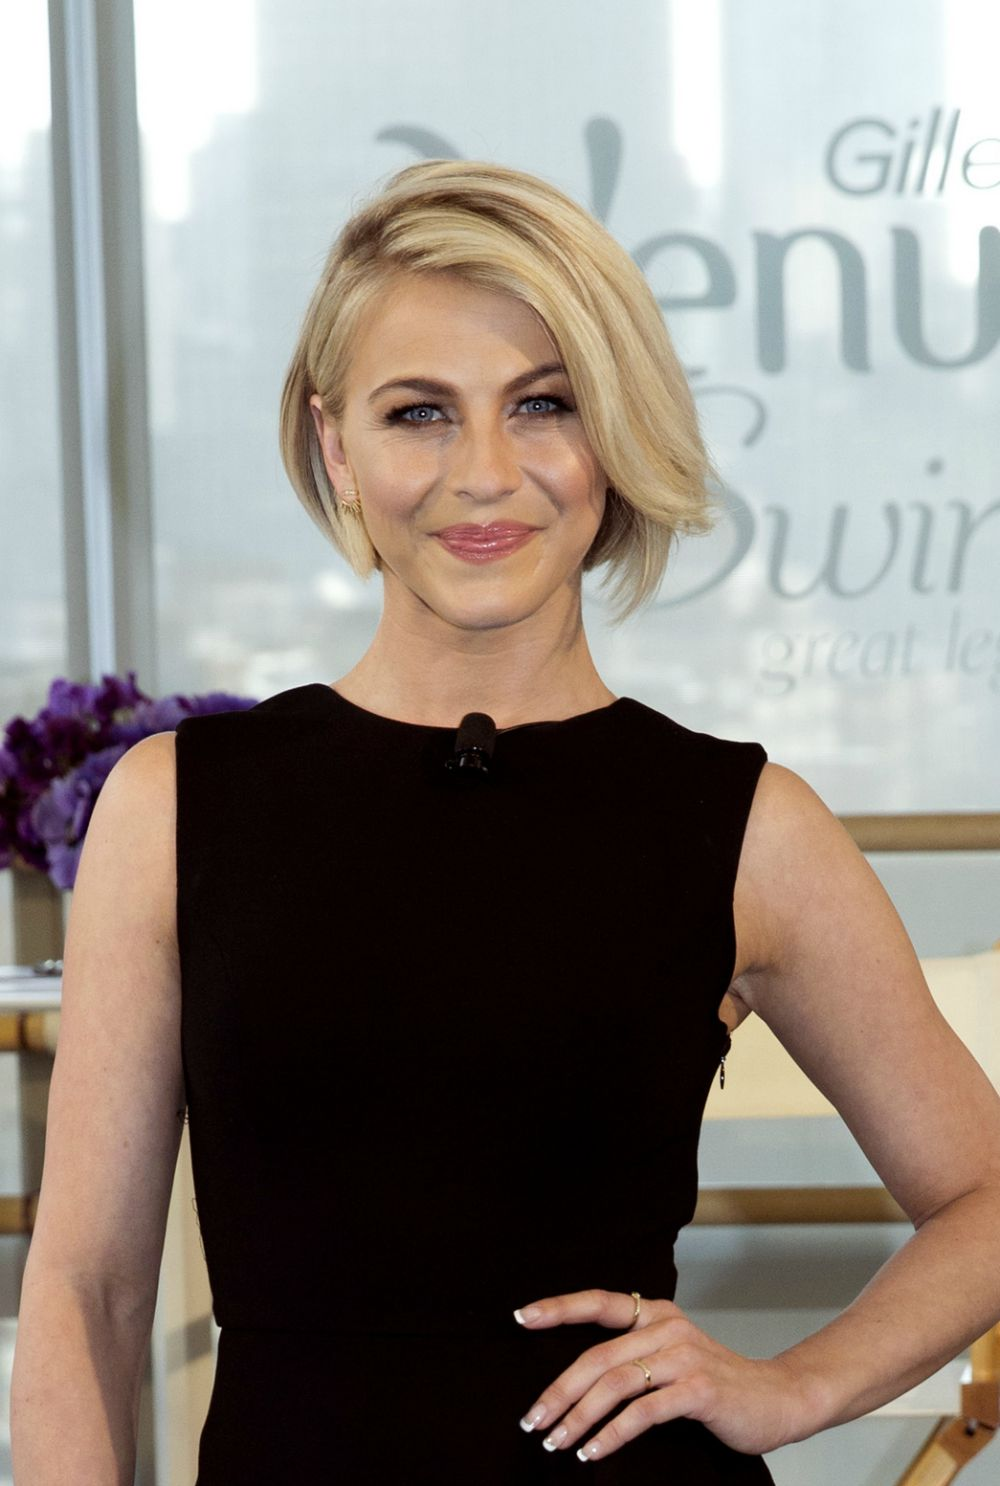 American Music Awards >> 31 Gorgeous Photos of Julianne Hough's Hair | Mom Fabulous